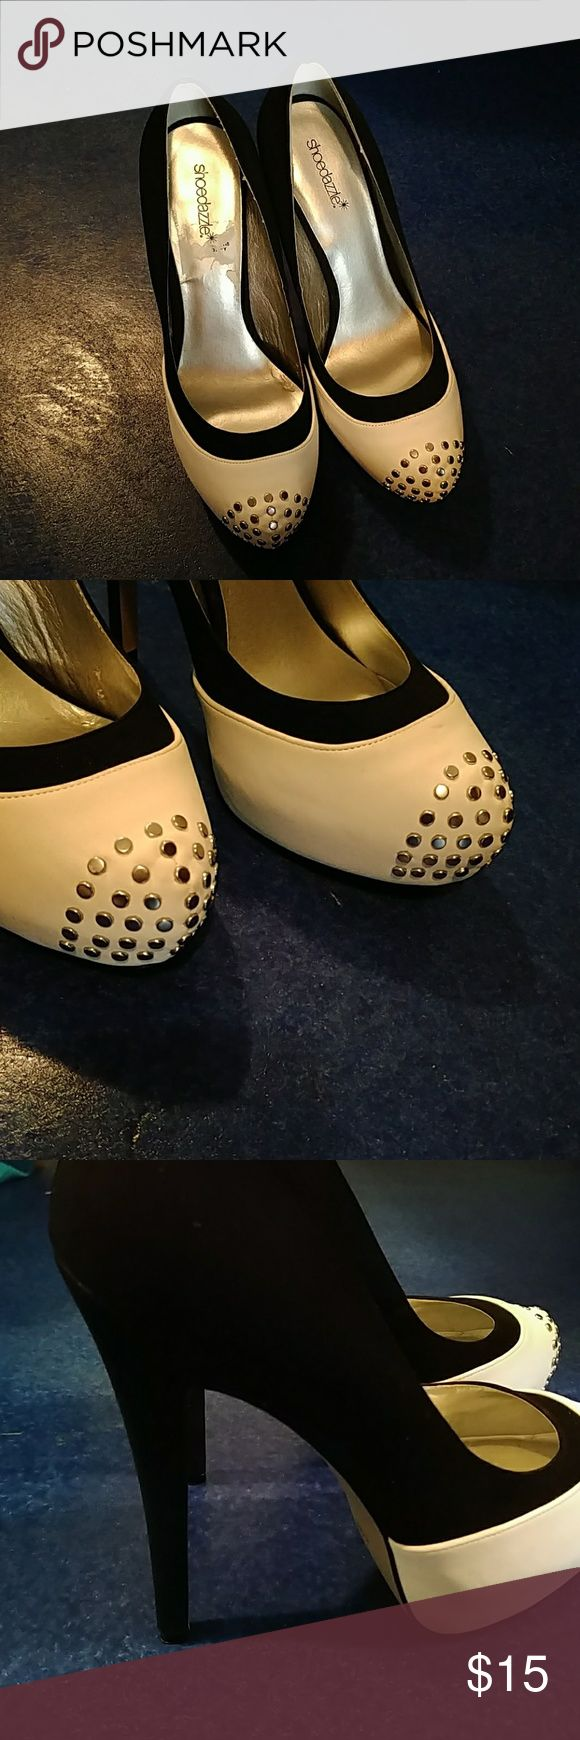 Black and white shoe dazzle pumps Two tone black and white pumps with flat silver studs on toes Shoe Dazzle Shoes Heels